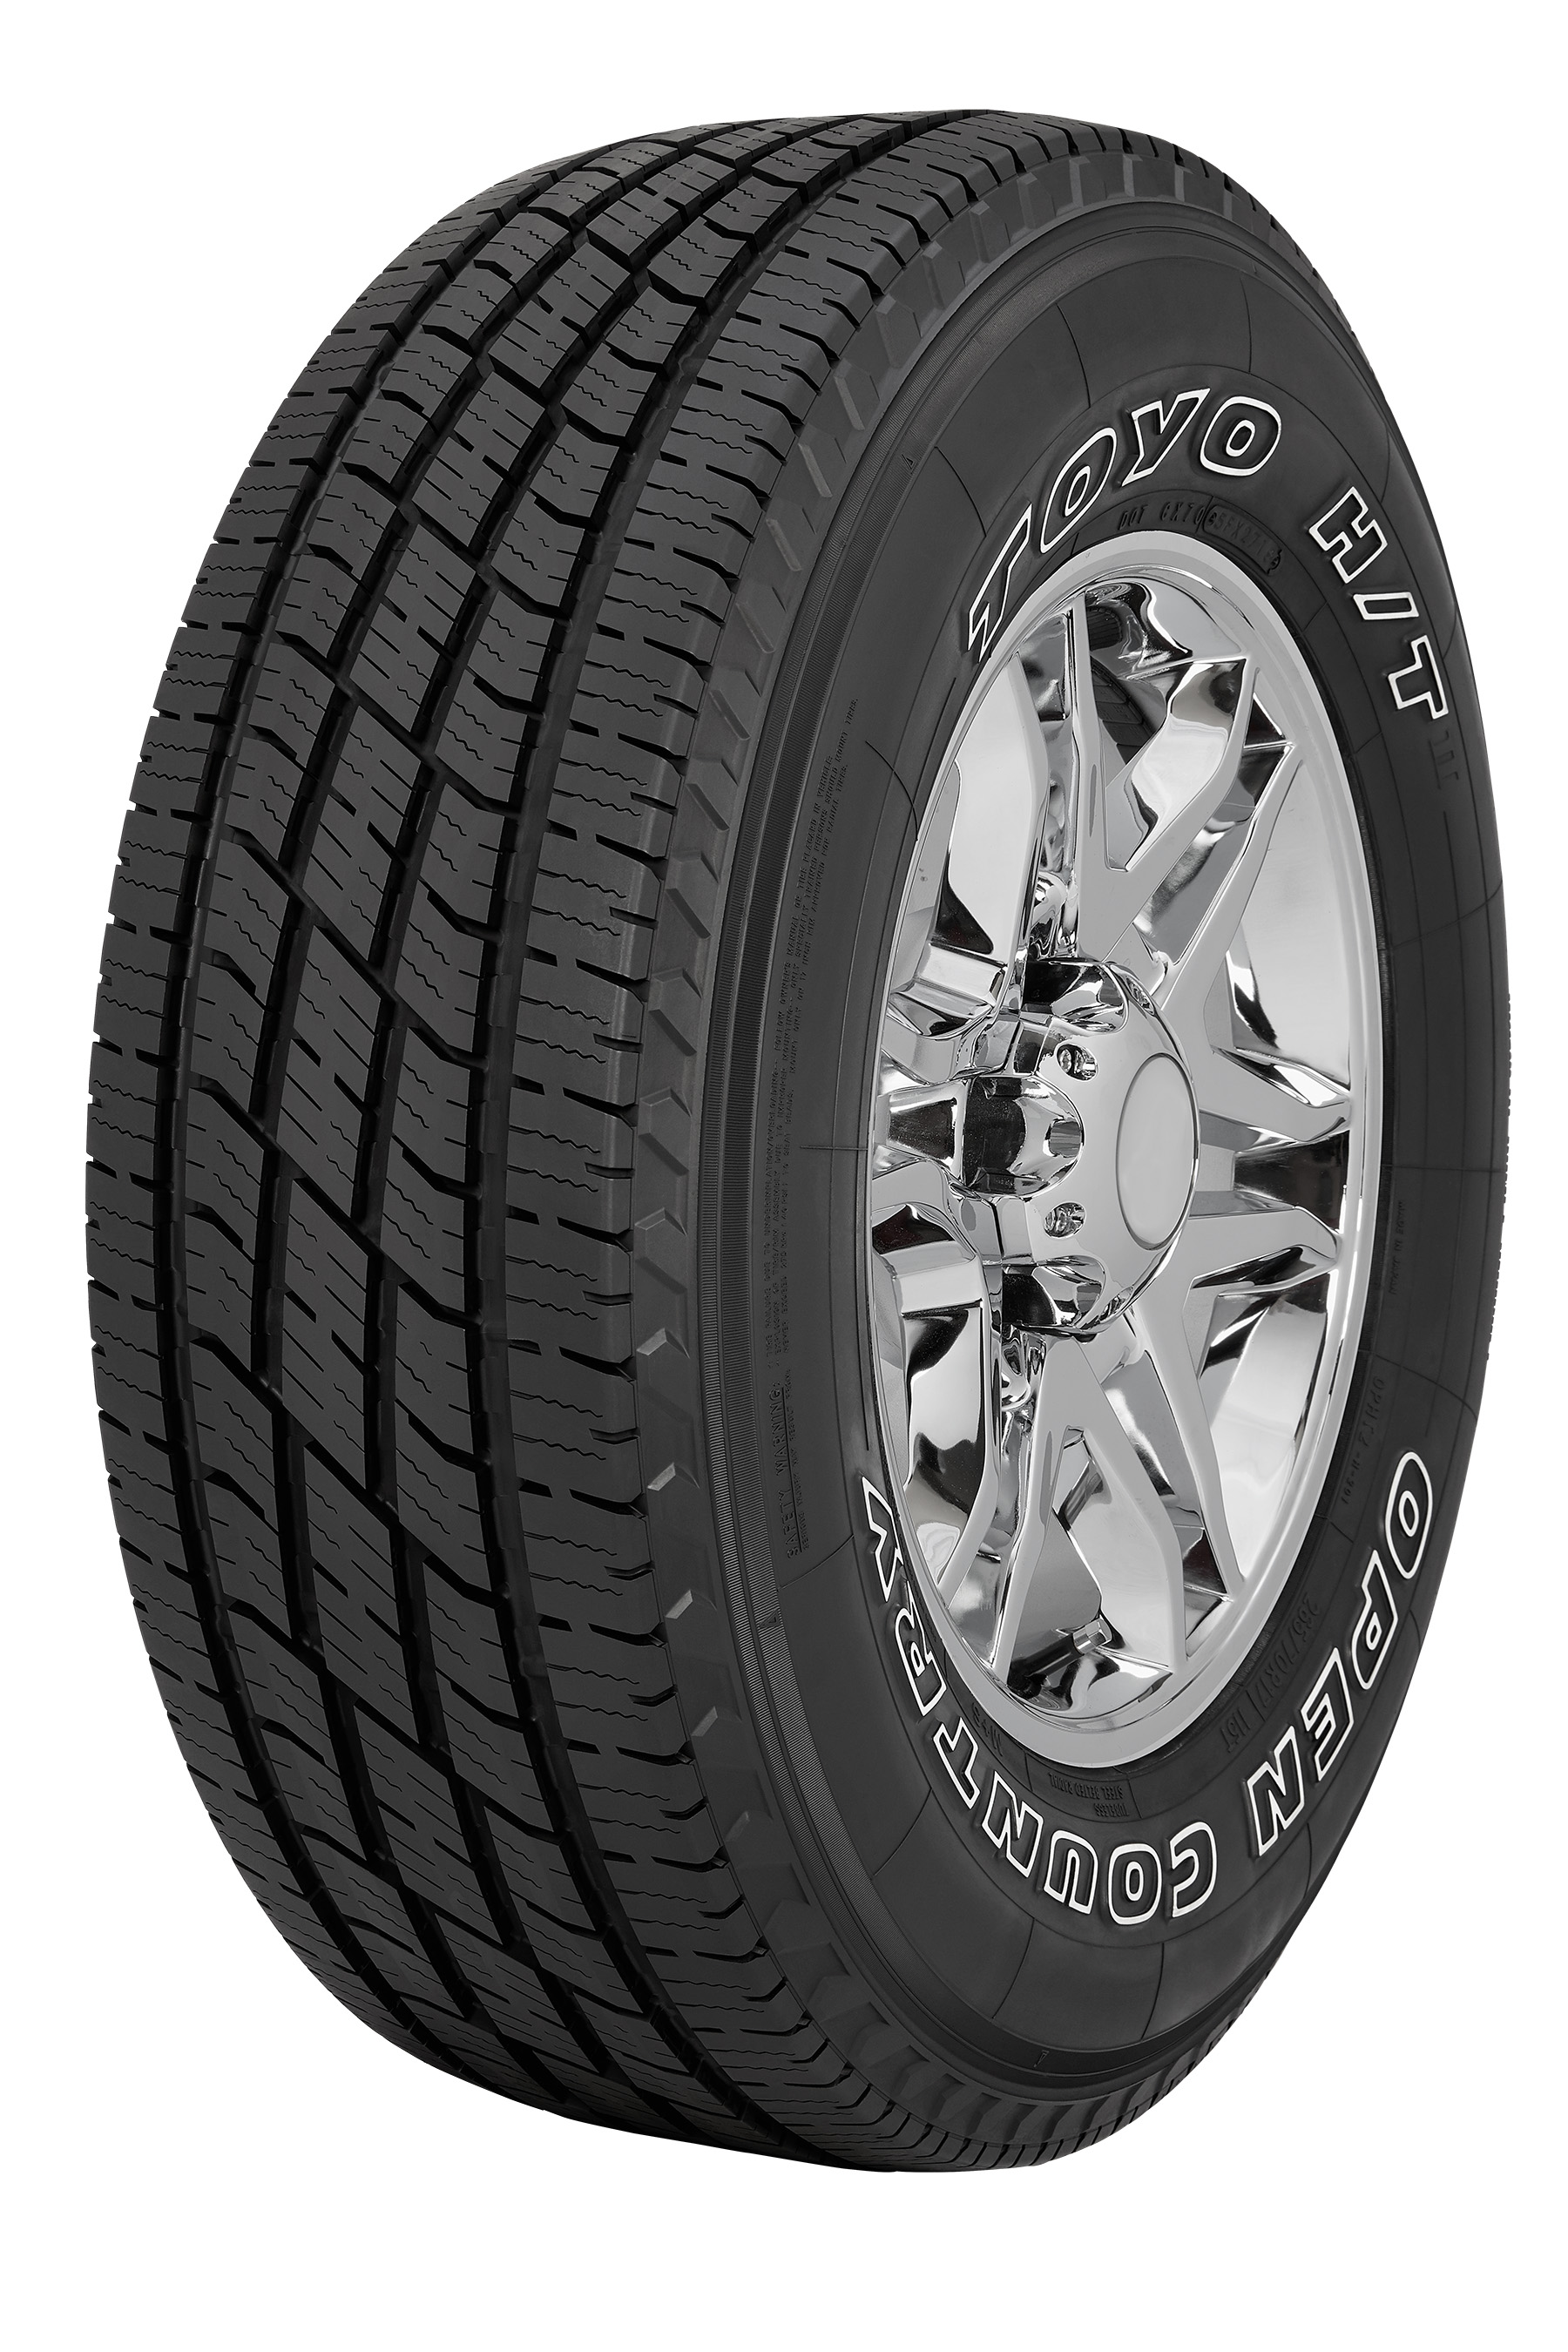 Toyo Tires White Letters >> Toyo Tires introduces the all-new Toyo Open Country H/T II